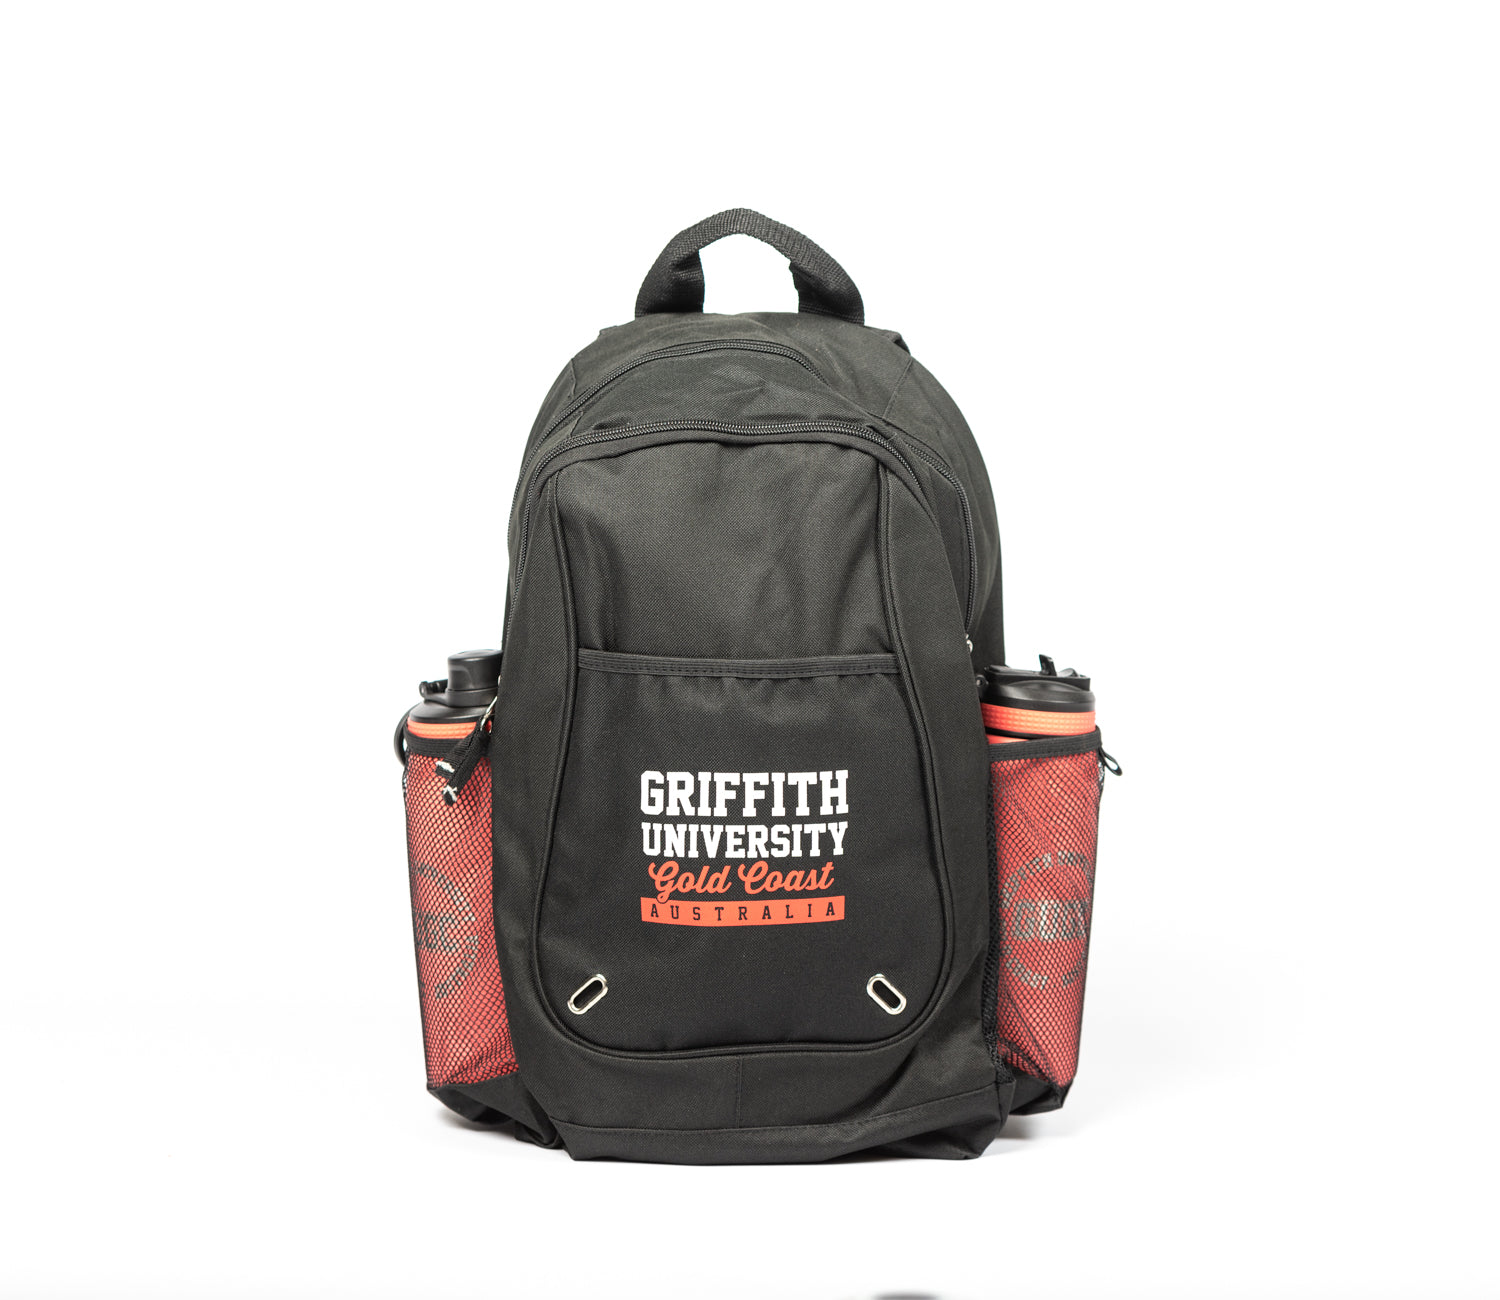 Griffith backpack